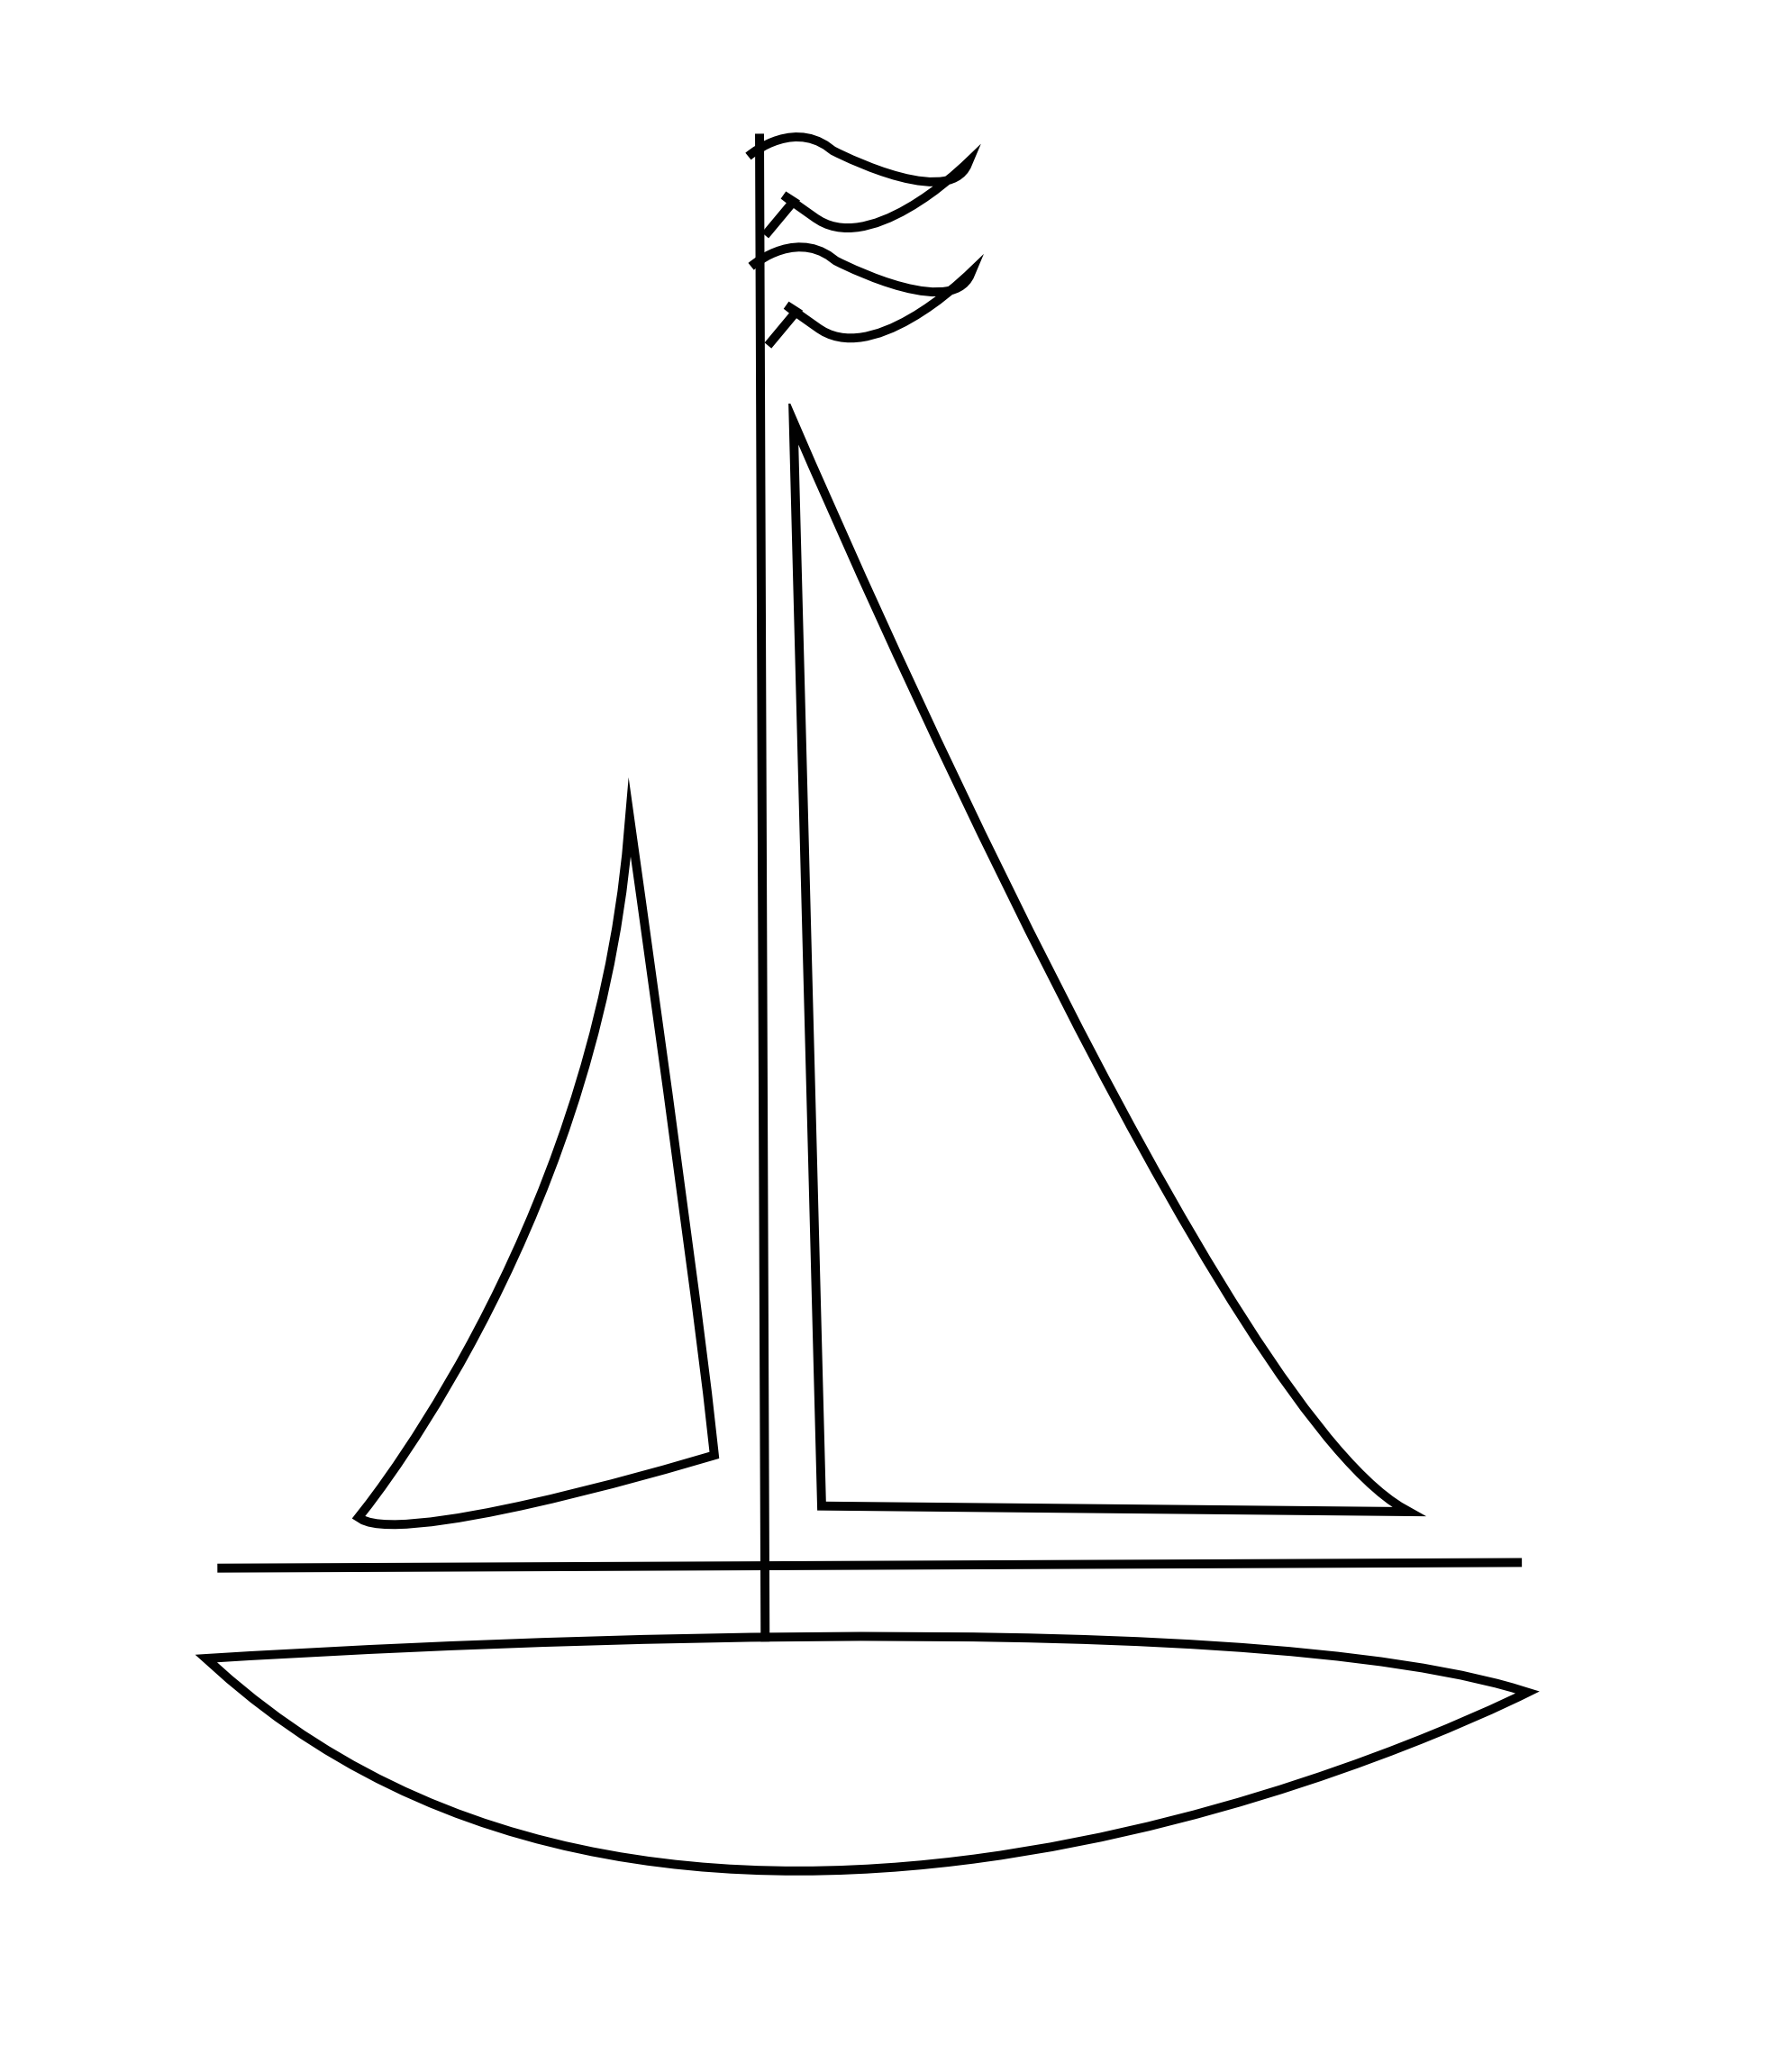 Drawing sailboats. Sailboat images buscar con